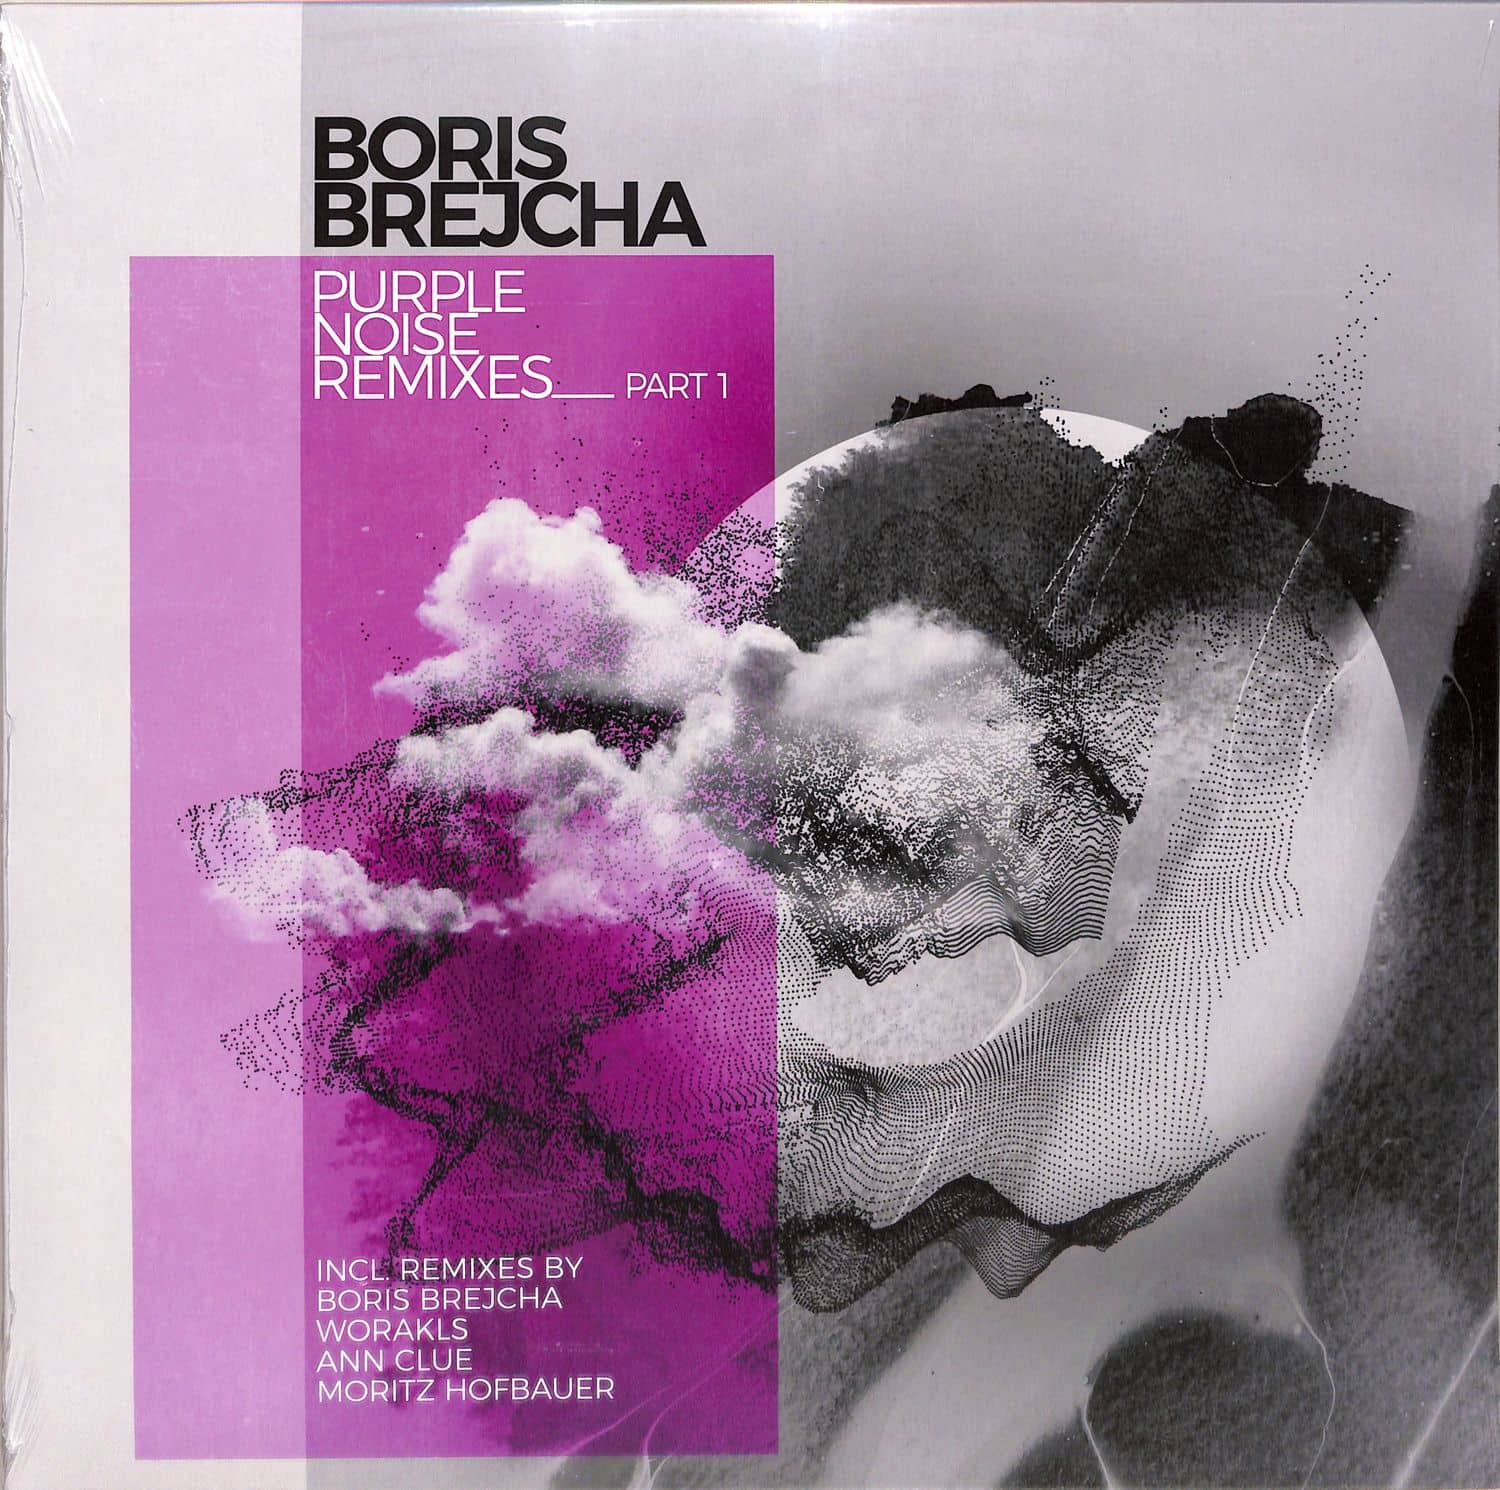 Boris Brejcha - PURPLE NOISE REMIXES 1